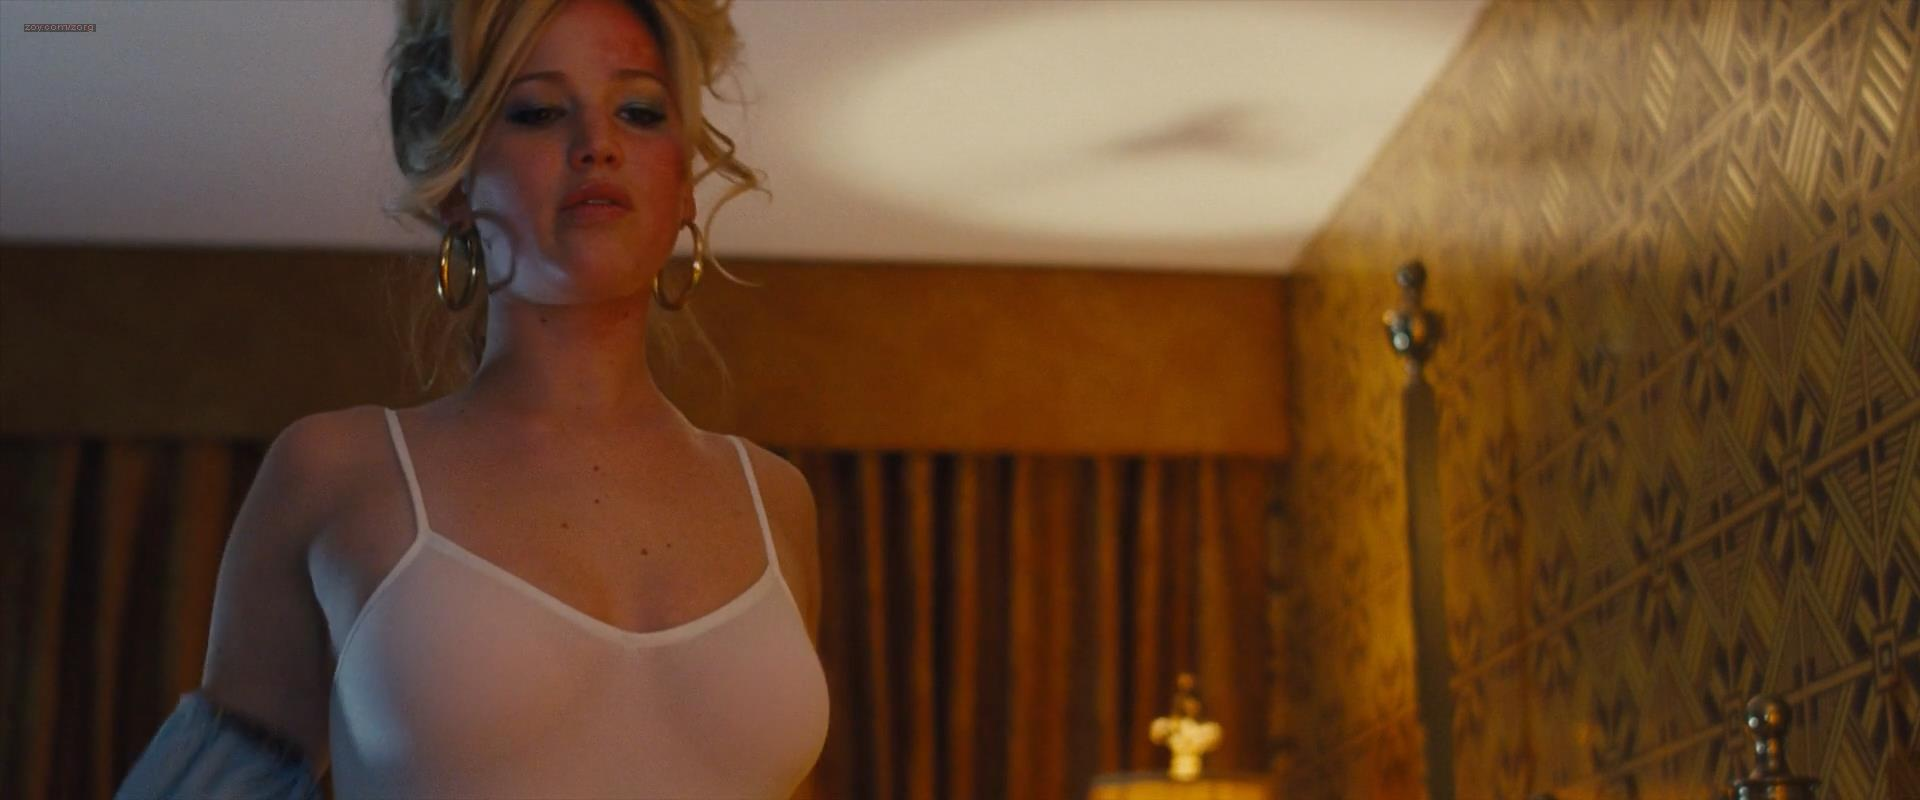 Jennifer Lawrence very hot - American Hustle (2013) hd1080p